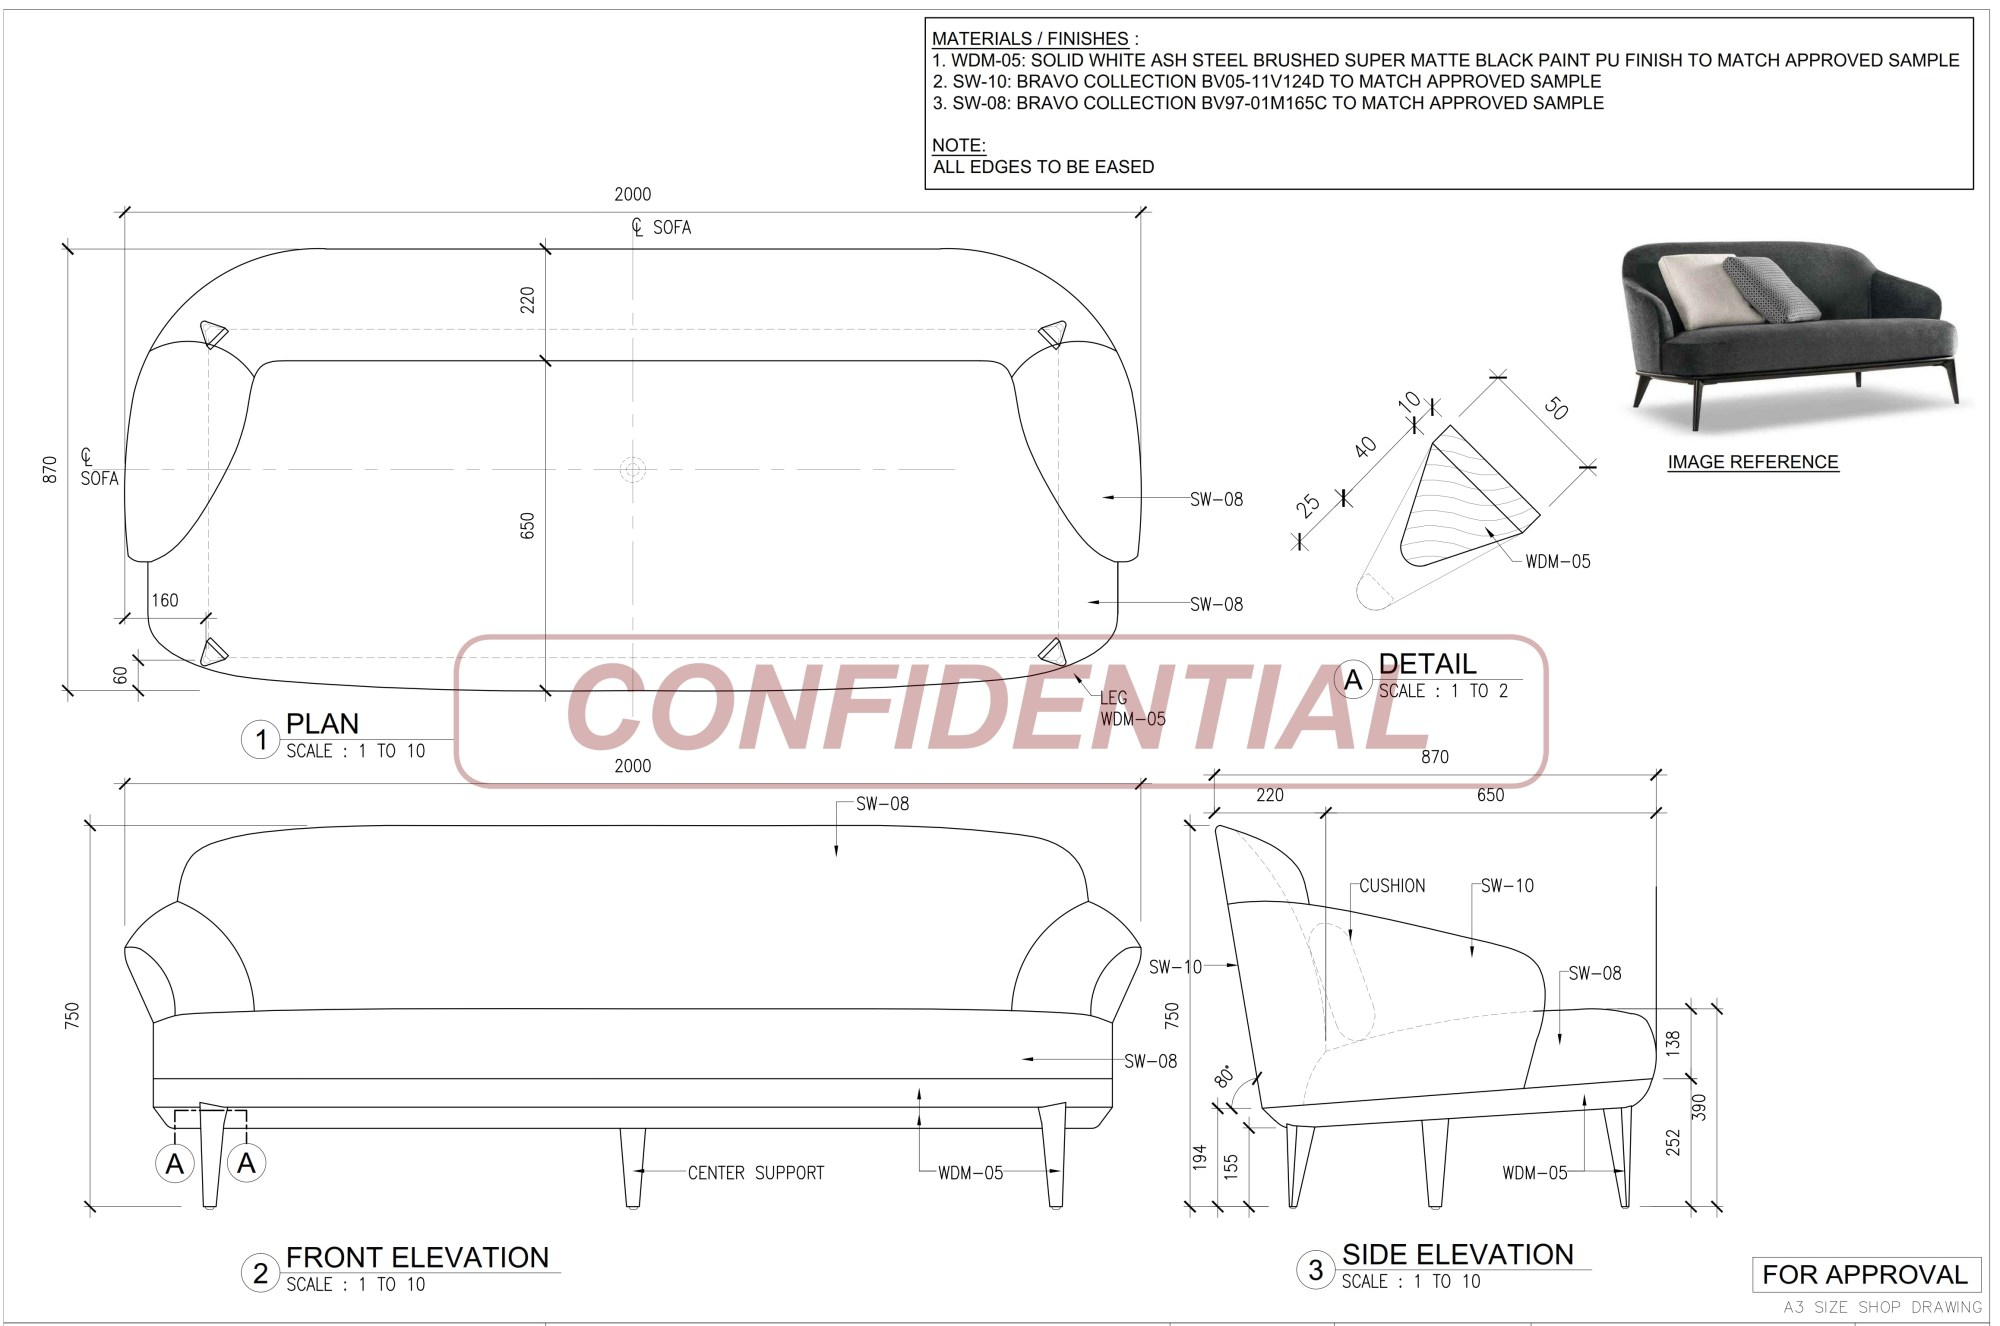 hight resolution of 4633x3073 hvac shop drawing comments wiring diagram drawing comments